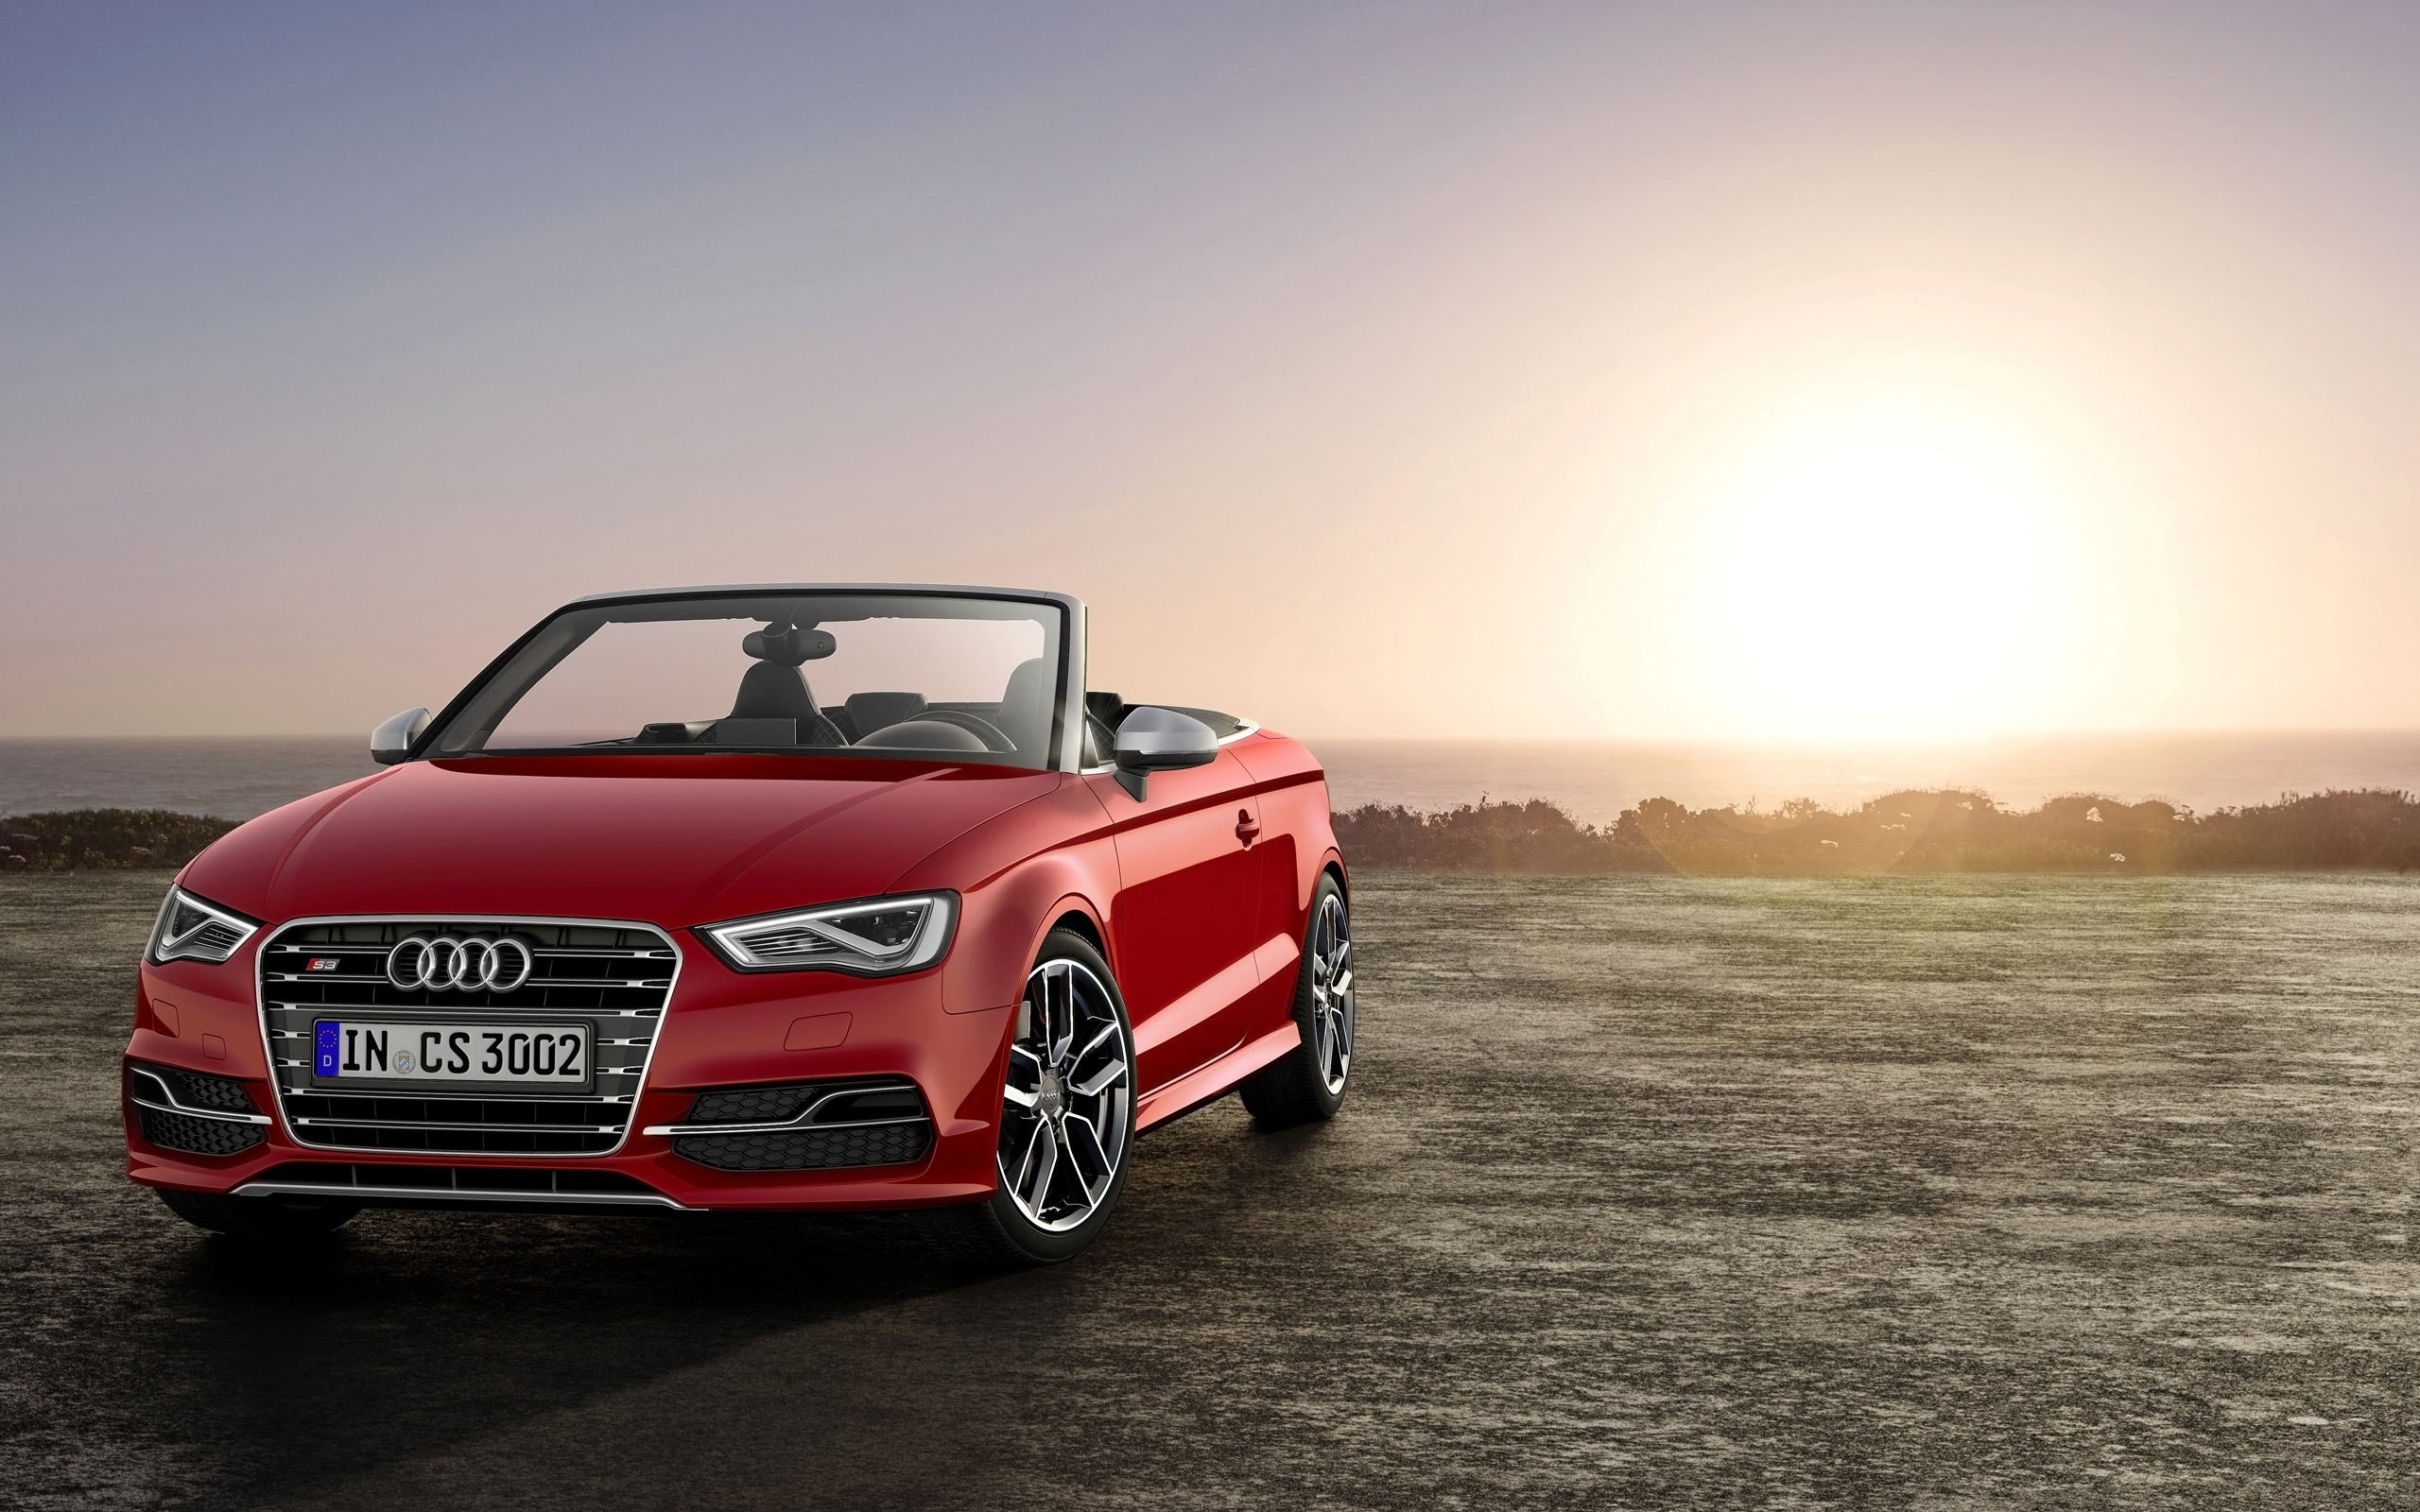 2014 audi s3 cabriolet wallpaper hd car wallpapers id. Black Bedroom Furniture Sets. Home Design Ideas